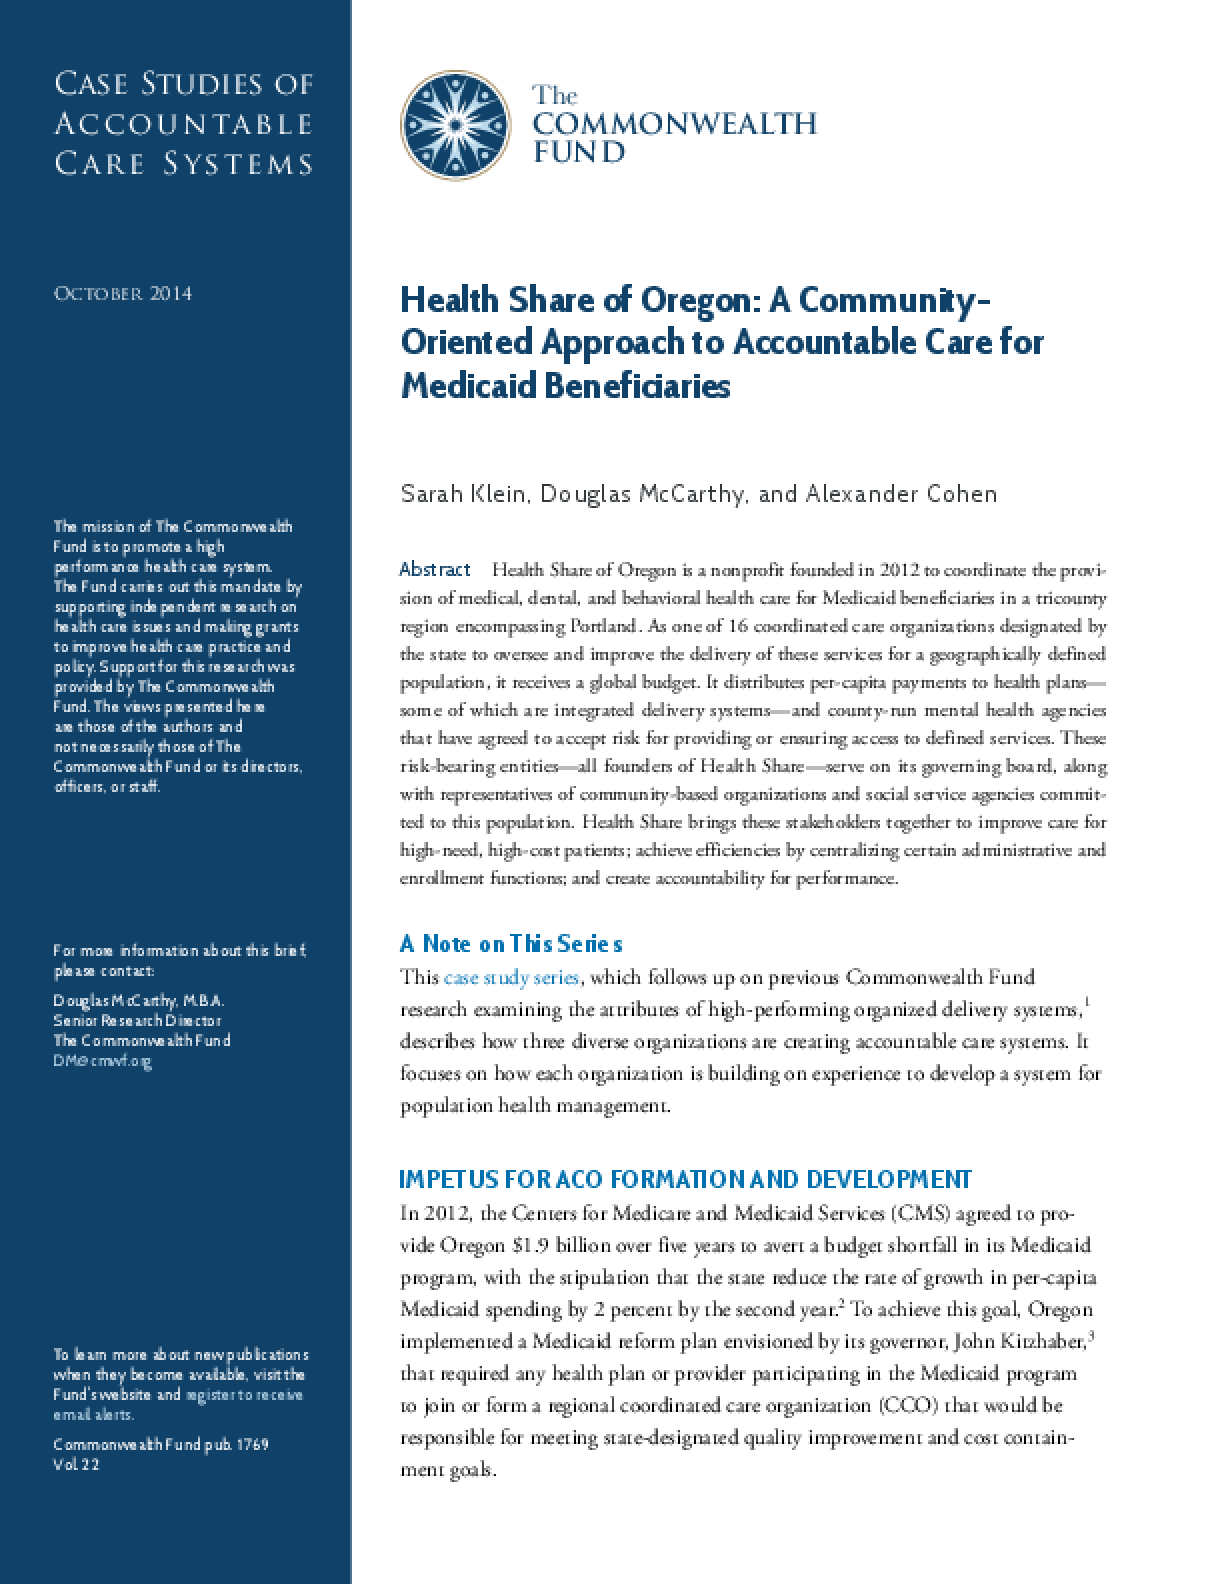 Health Share of Oregon: A Community-Oriented Approach to Accountable Care for Medicaid Beneficiaries